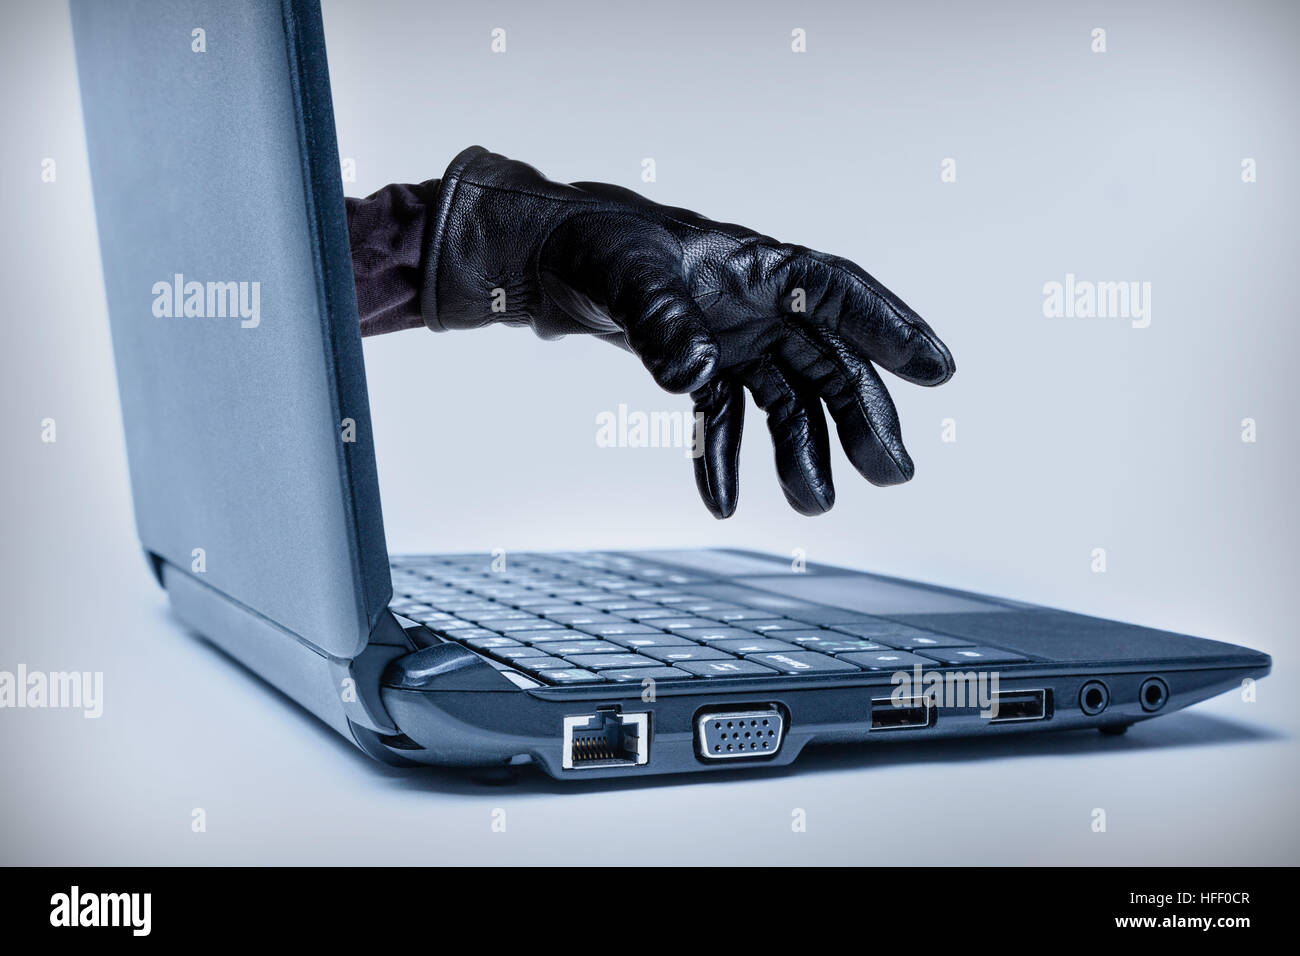 A gloved hand reaching out through a laptop, signifying a cybercrime or Internet theft while using Internet media. - Stock Image